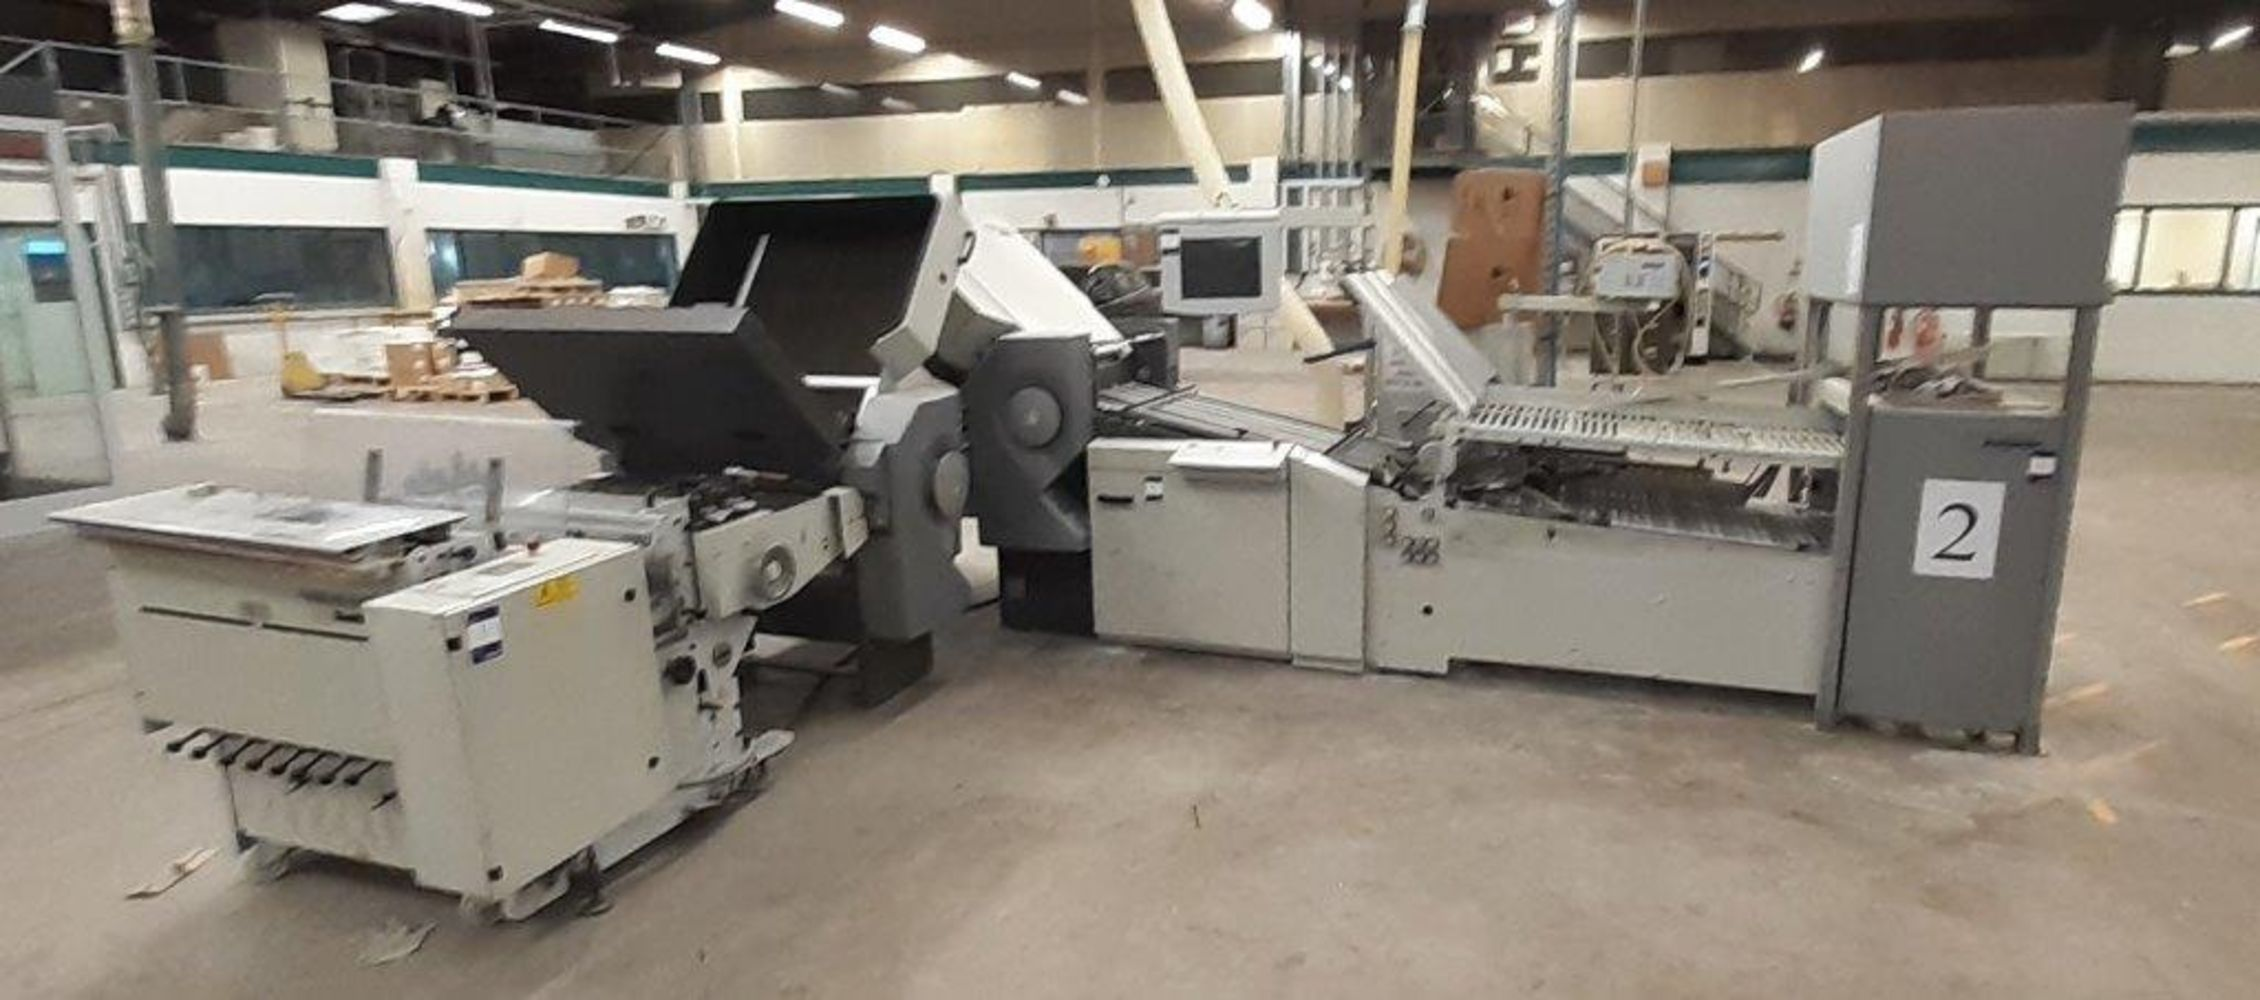 Printing Machinery & Stocks (Remaining Assets from Wood Mitchell Printers Limited – In Liquidation)